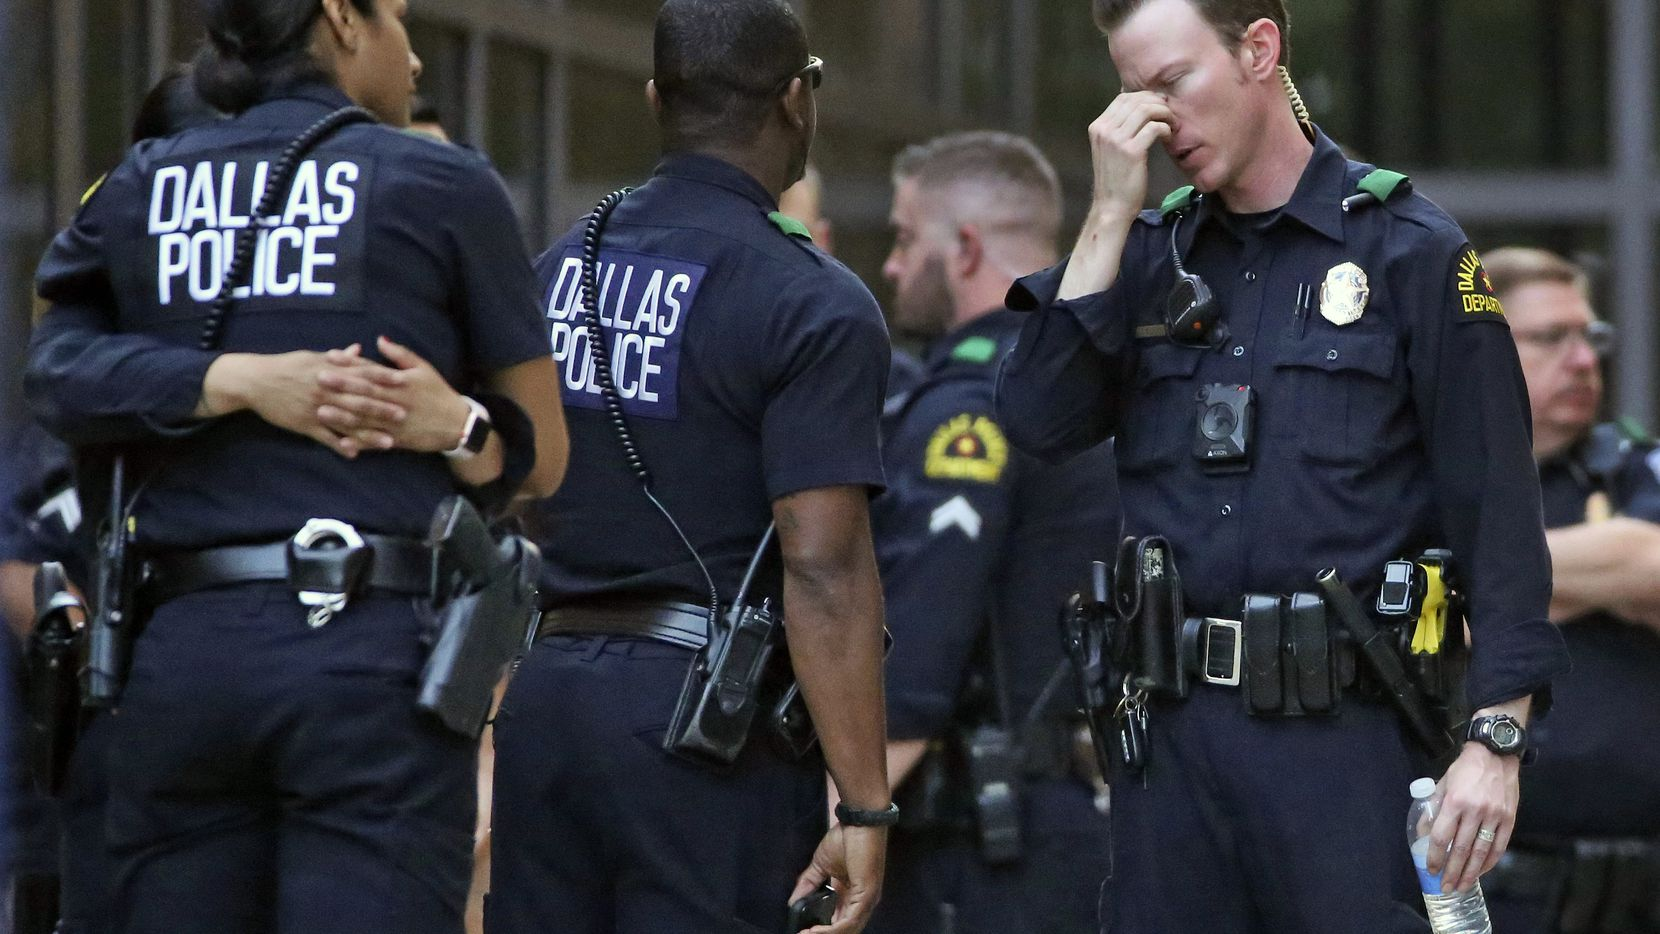 Dallas Police officers wait outside the entrance of the emergency room at Presbyterian Hospital, Tuesday, April 24, 2018, in Dallas, following a shooting at an area Home Depot where two police officers and a civilian were shot. The officers were critically wounded in the shooting, according to officials. (Louis DeLuca/The Dallas Morning News via AP)